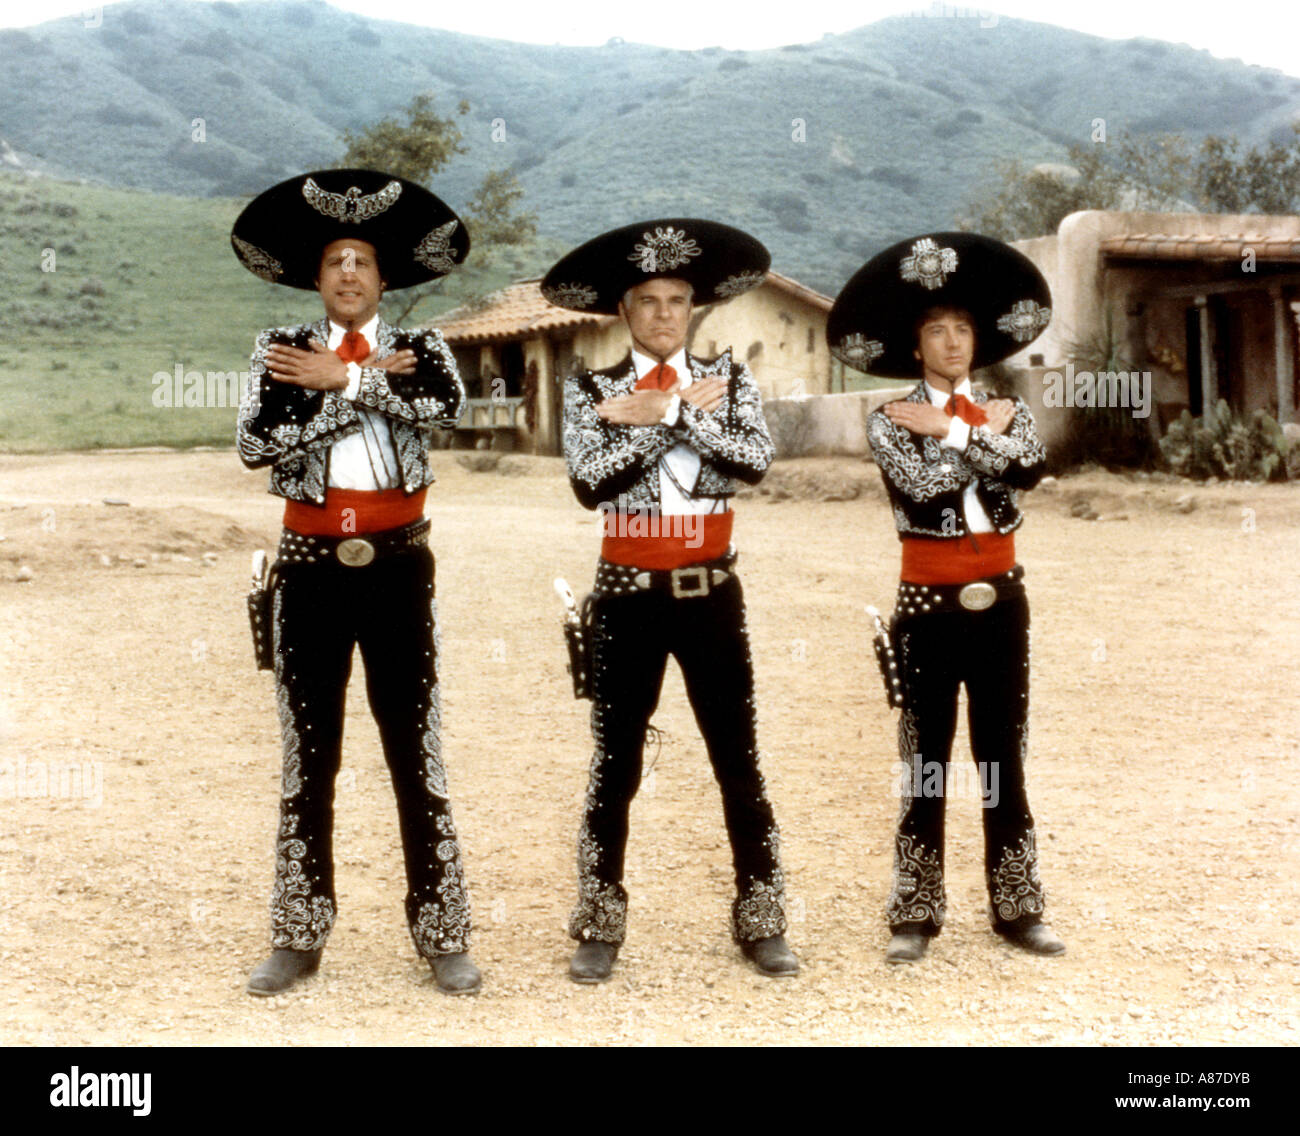 THREE AMIGOS 1982 Orion film with from left Chevy Chase, Steve Martin, Alfonso Arau - Stock Image